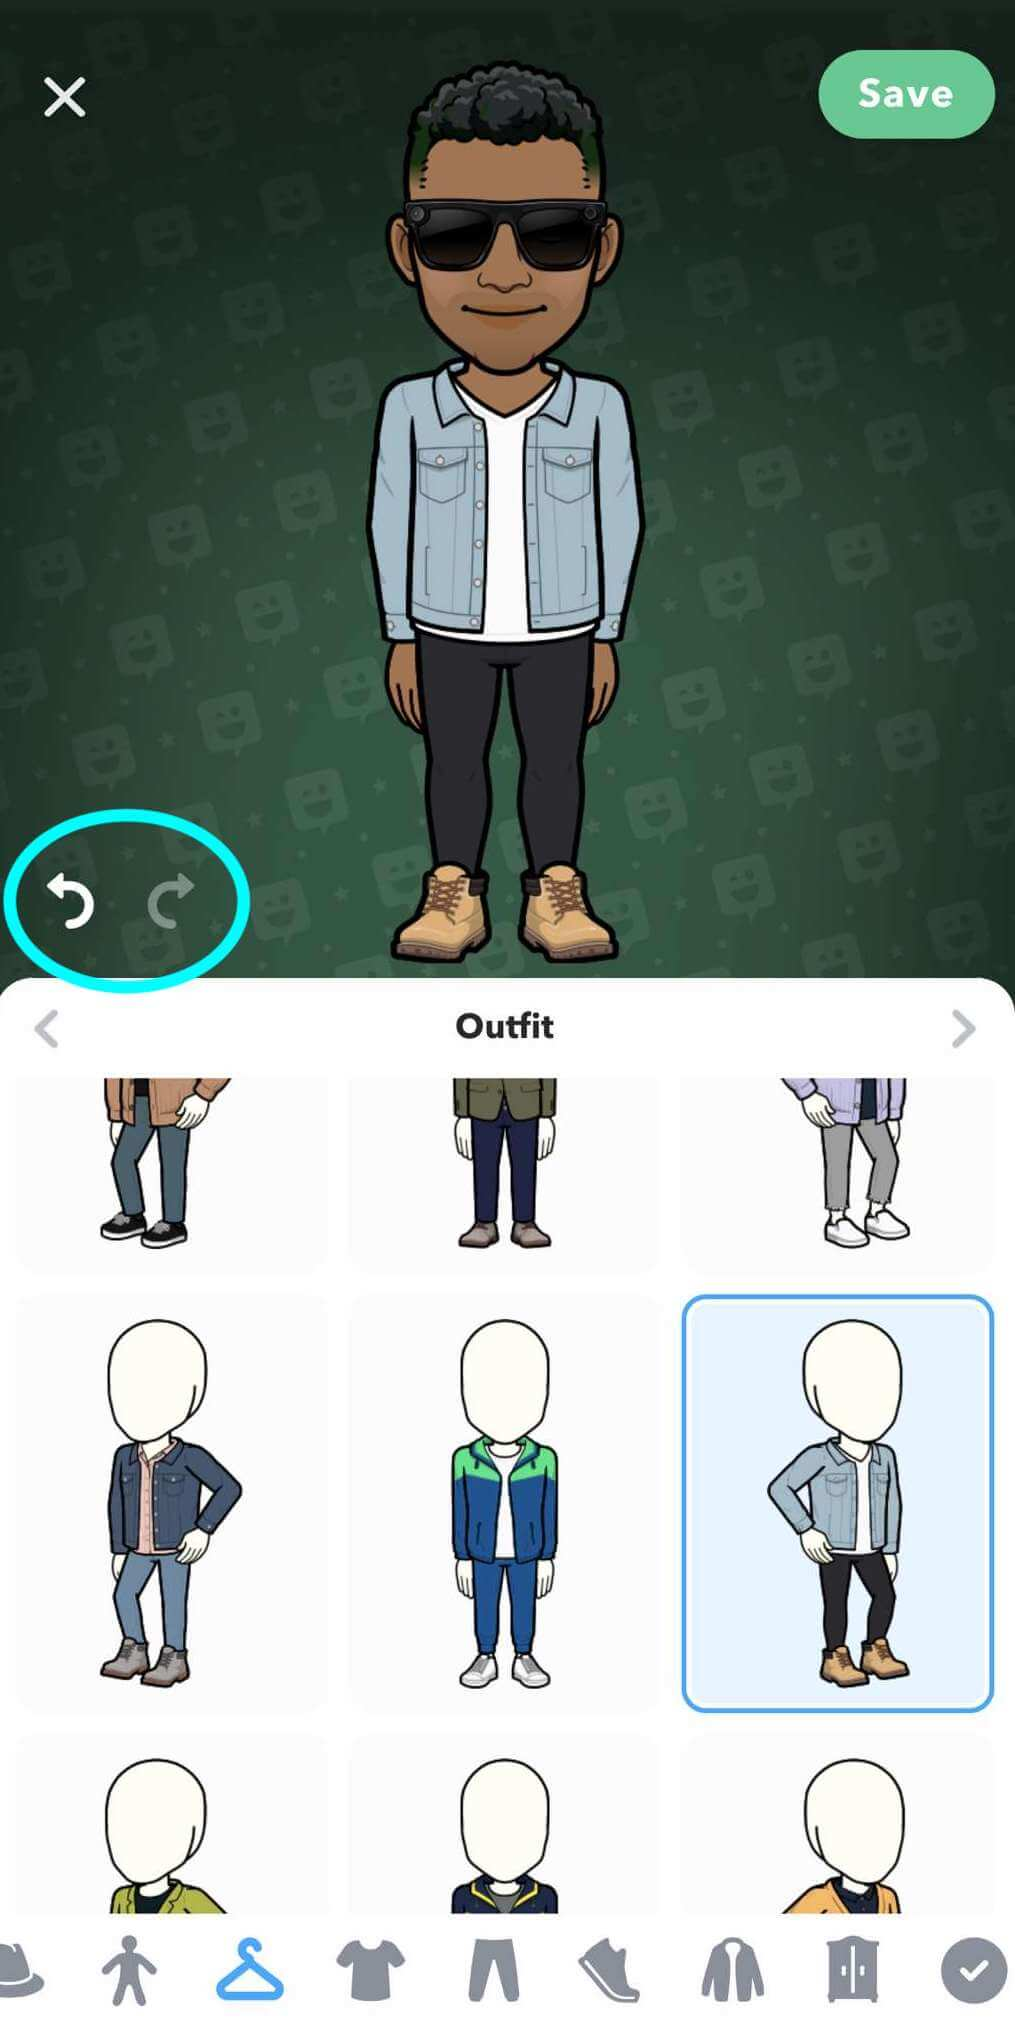 bitmoji avatar shown at the top and the outfit options are shown on the bottom half, a new outfit is selected and the Undo and Redo buttons are at the centre-left of the Avatar Designer screen